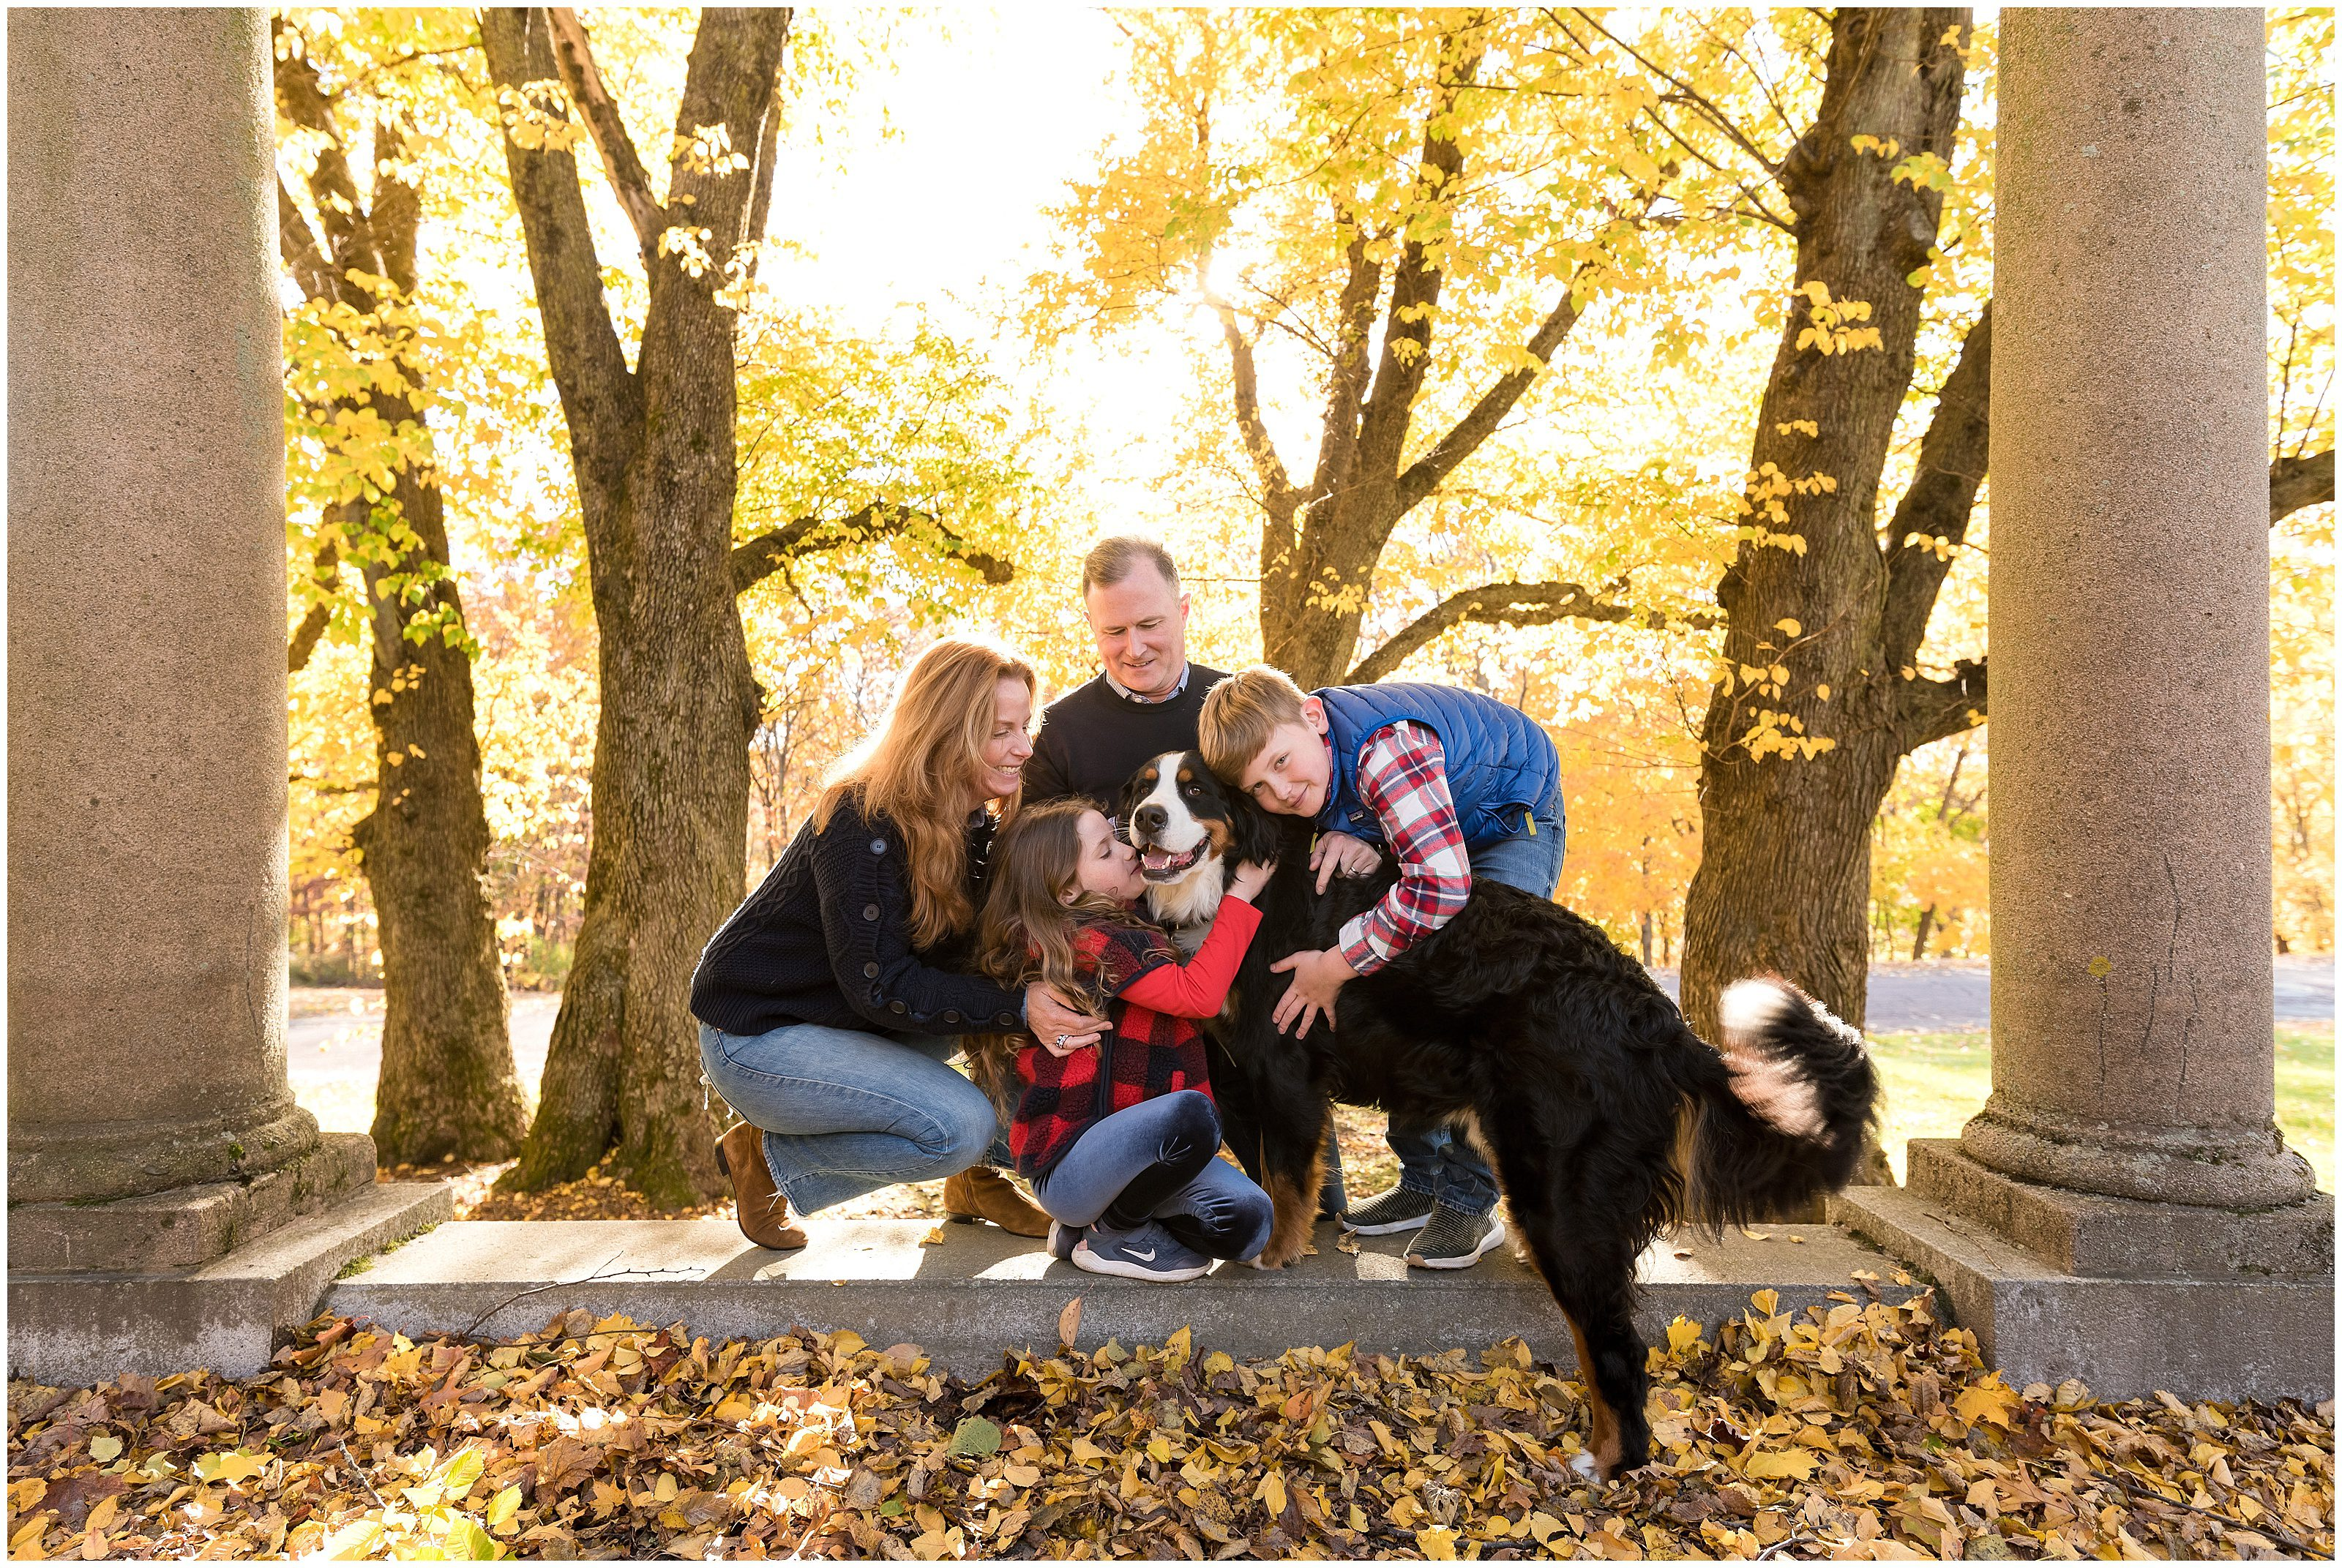 Puppy and family at Larz Anderson Park in Brookline